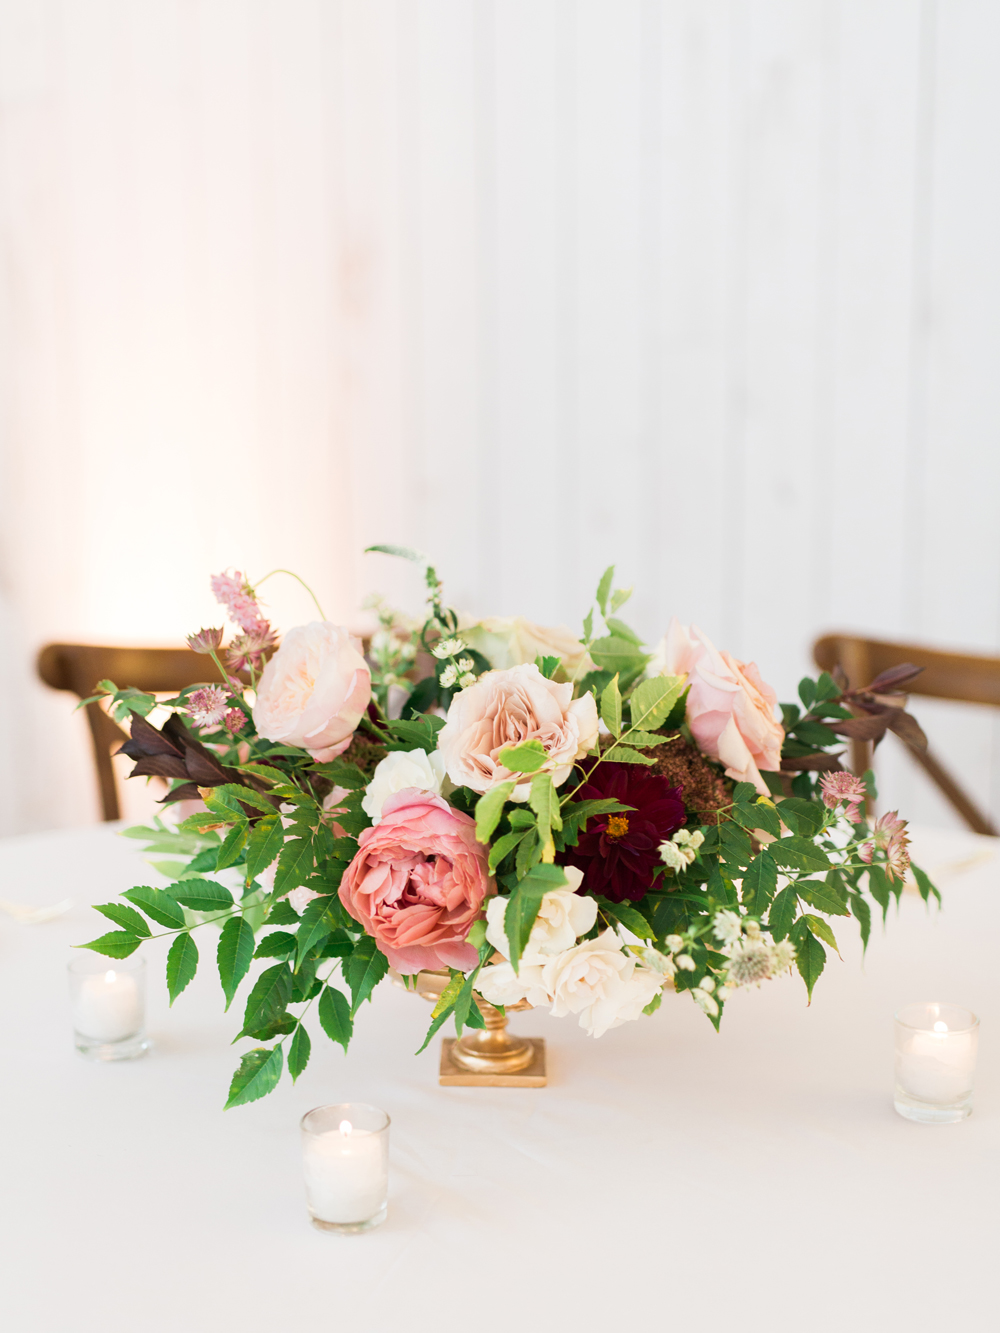 floral centerpieces - photo by Elisabeth Carol Photography http://ruffledblog.com/picturesque-garden-wedding-at-white-sparrow-barn